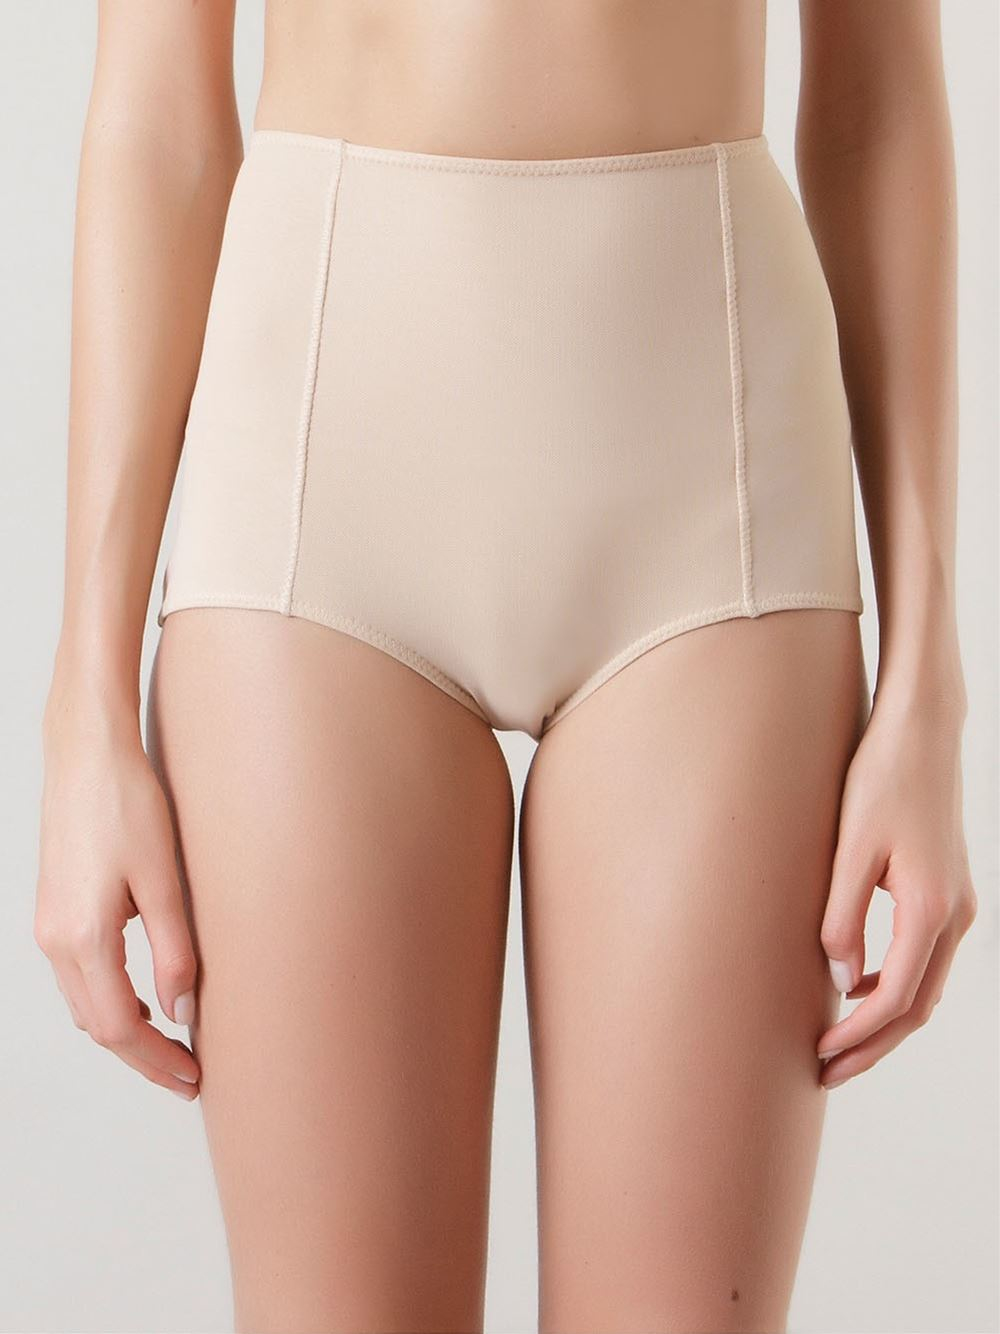 Nudes in hot pants